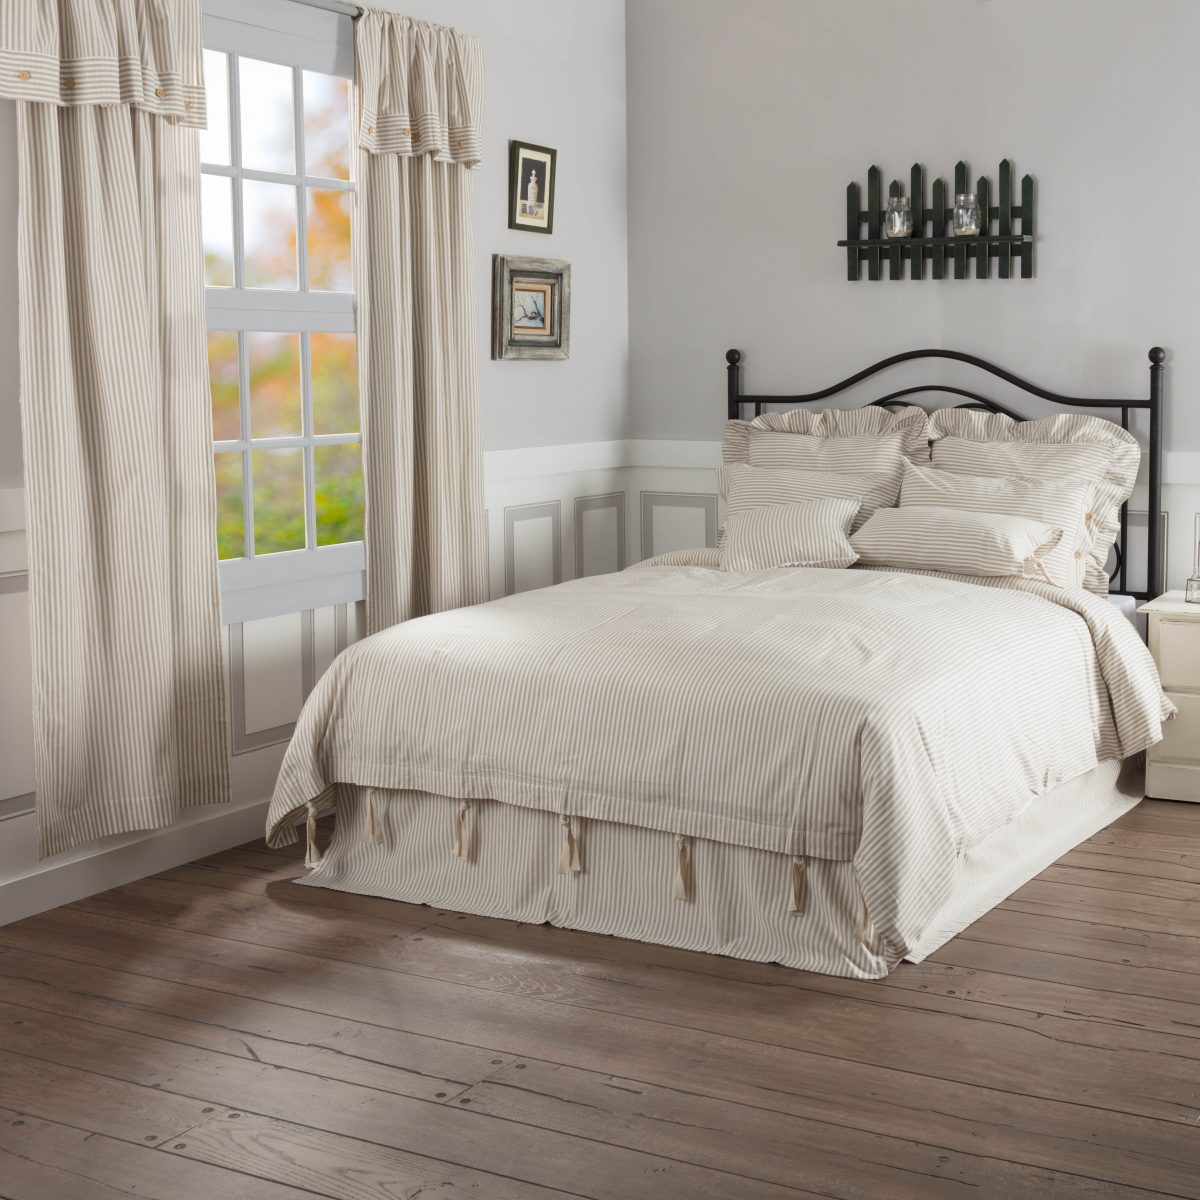 Farmhouse Ticking Taupe Duvet Cover  Queen  Piper Classics. Granite Plus. Privacy Wall. Solar Tube. Yellow River Granite. Trends In Tile. Faded Oriental Rug. Large Coffee Tables. Patio Under Deck